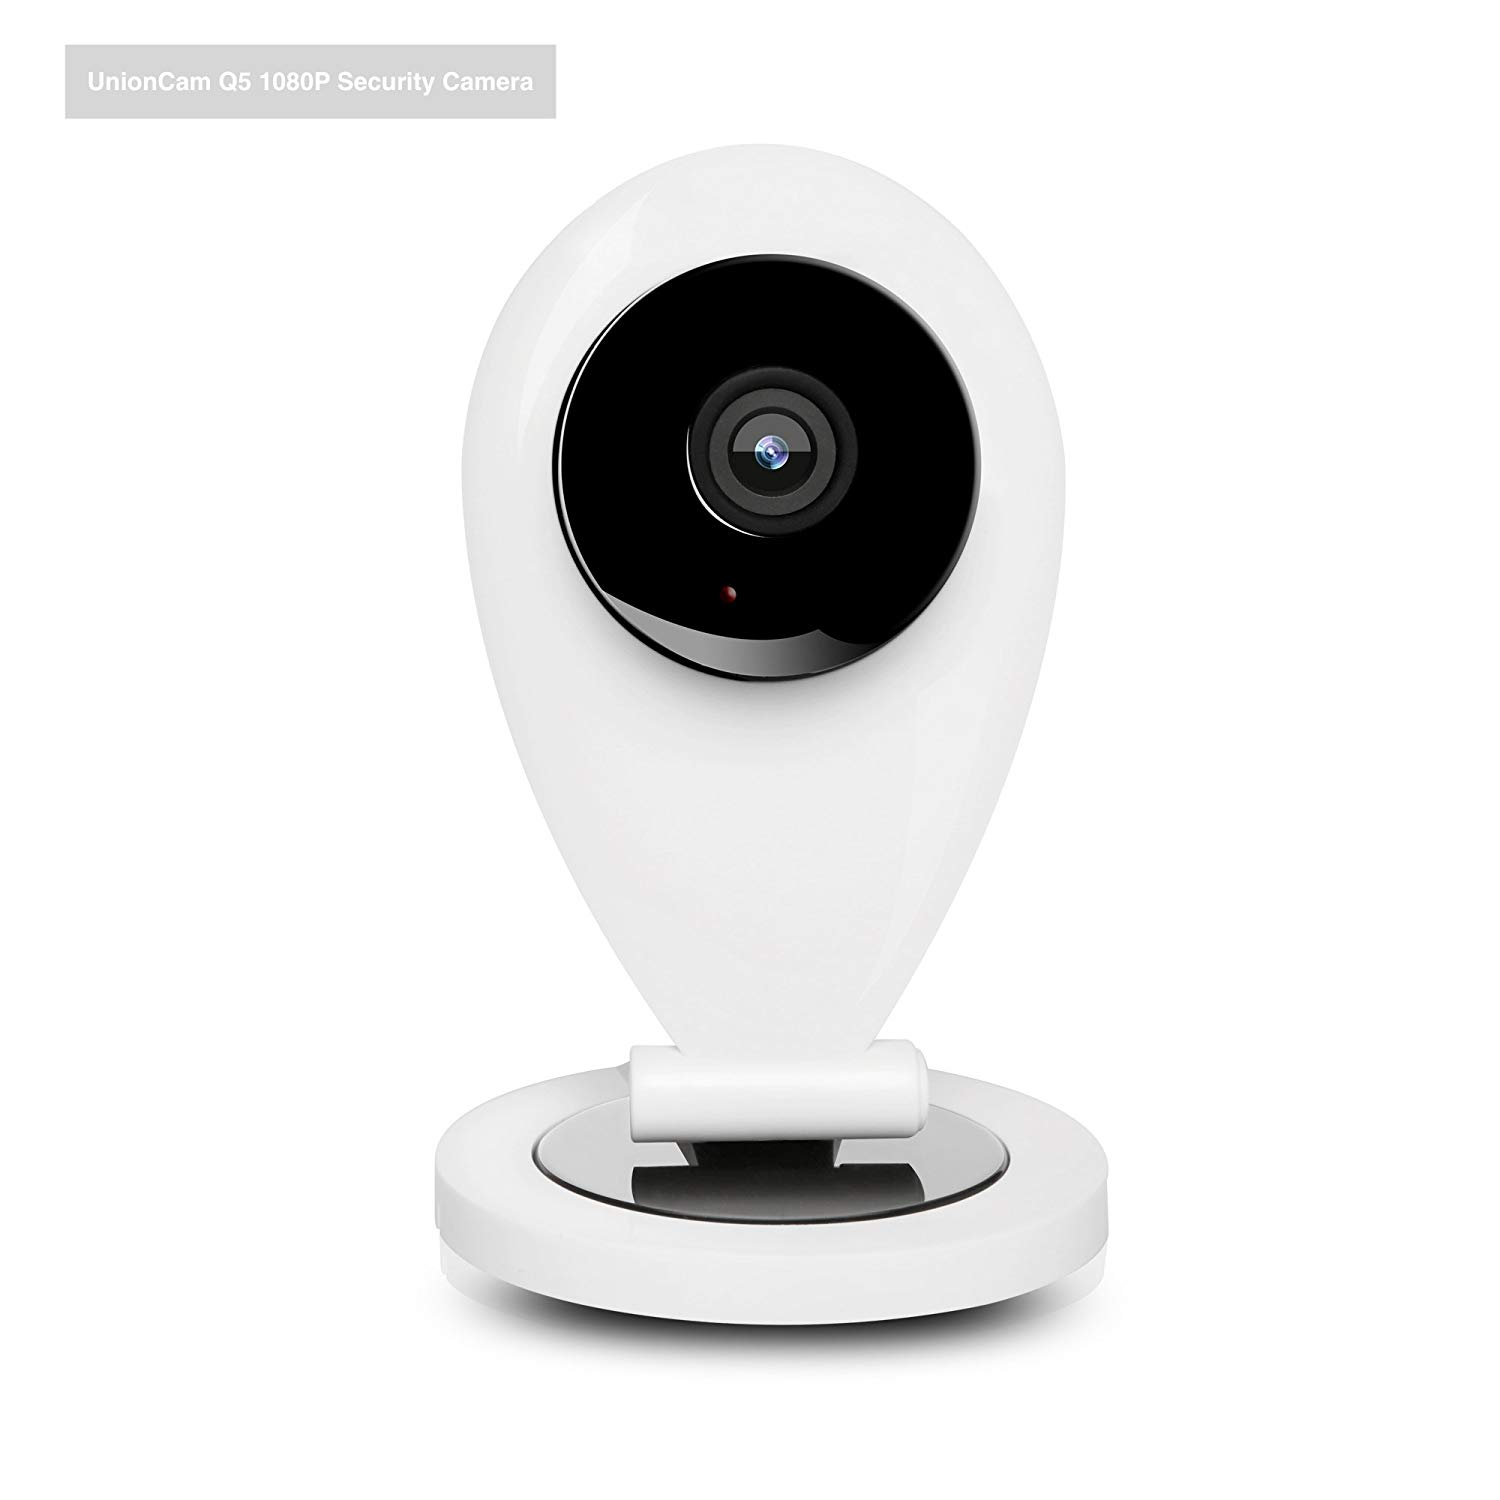 Inexpensive $26USD 1080p WiFi Camera - Jason Antman's Blog